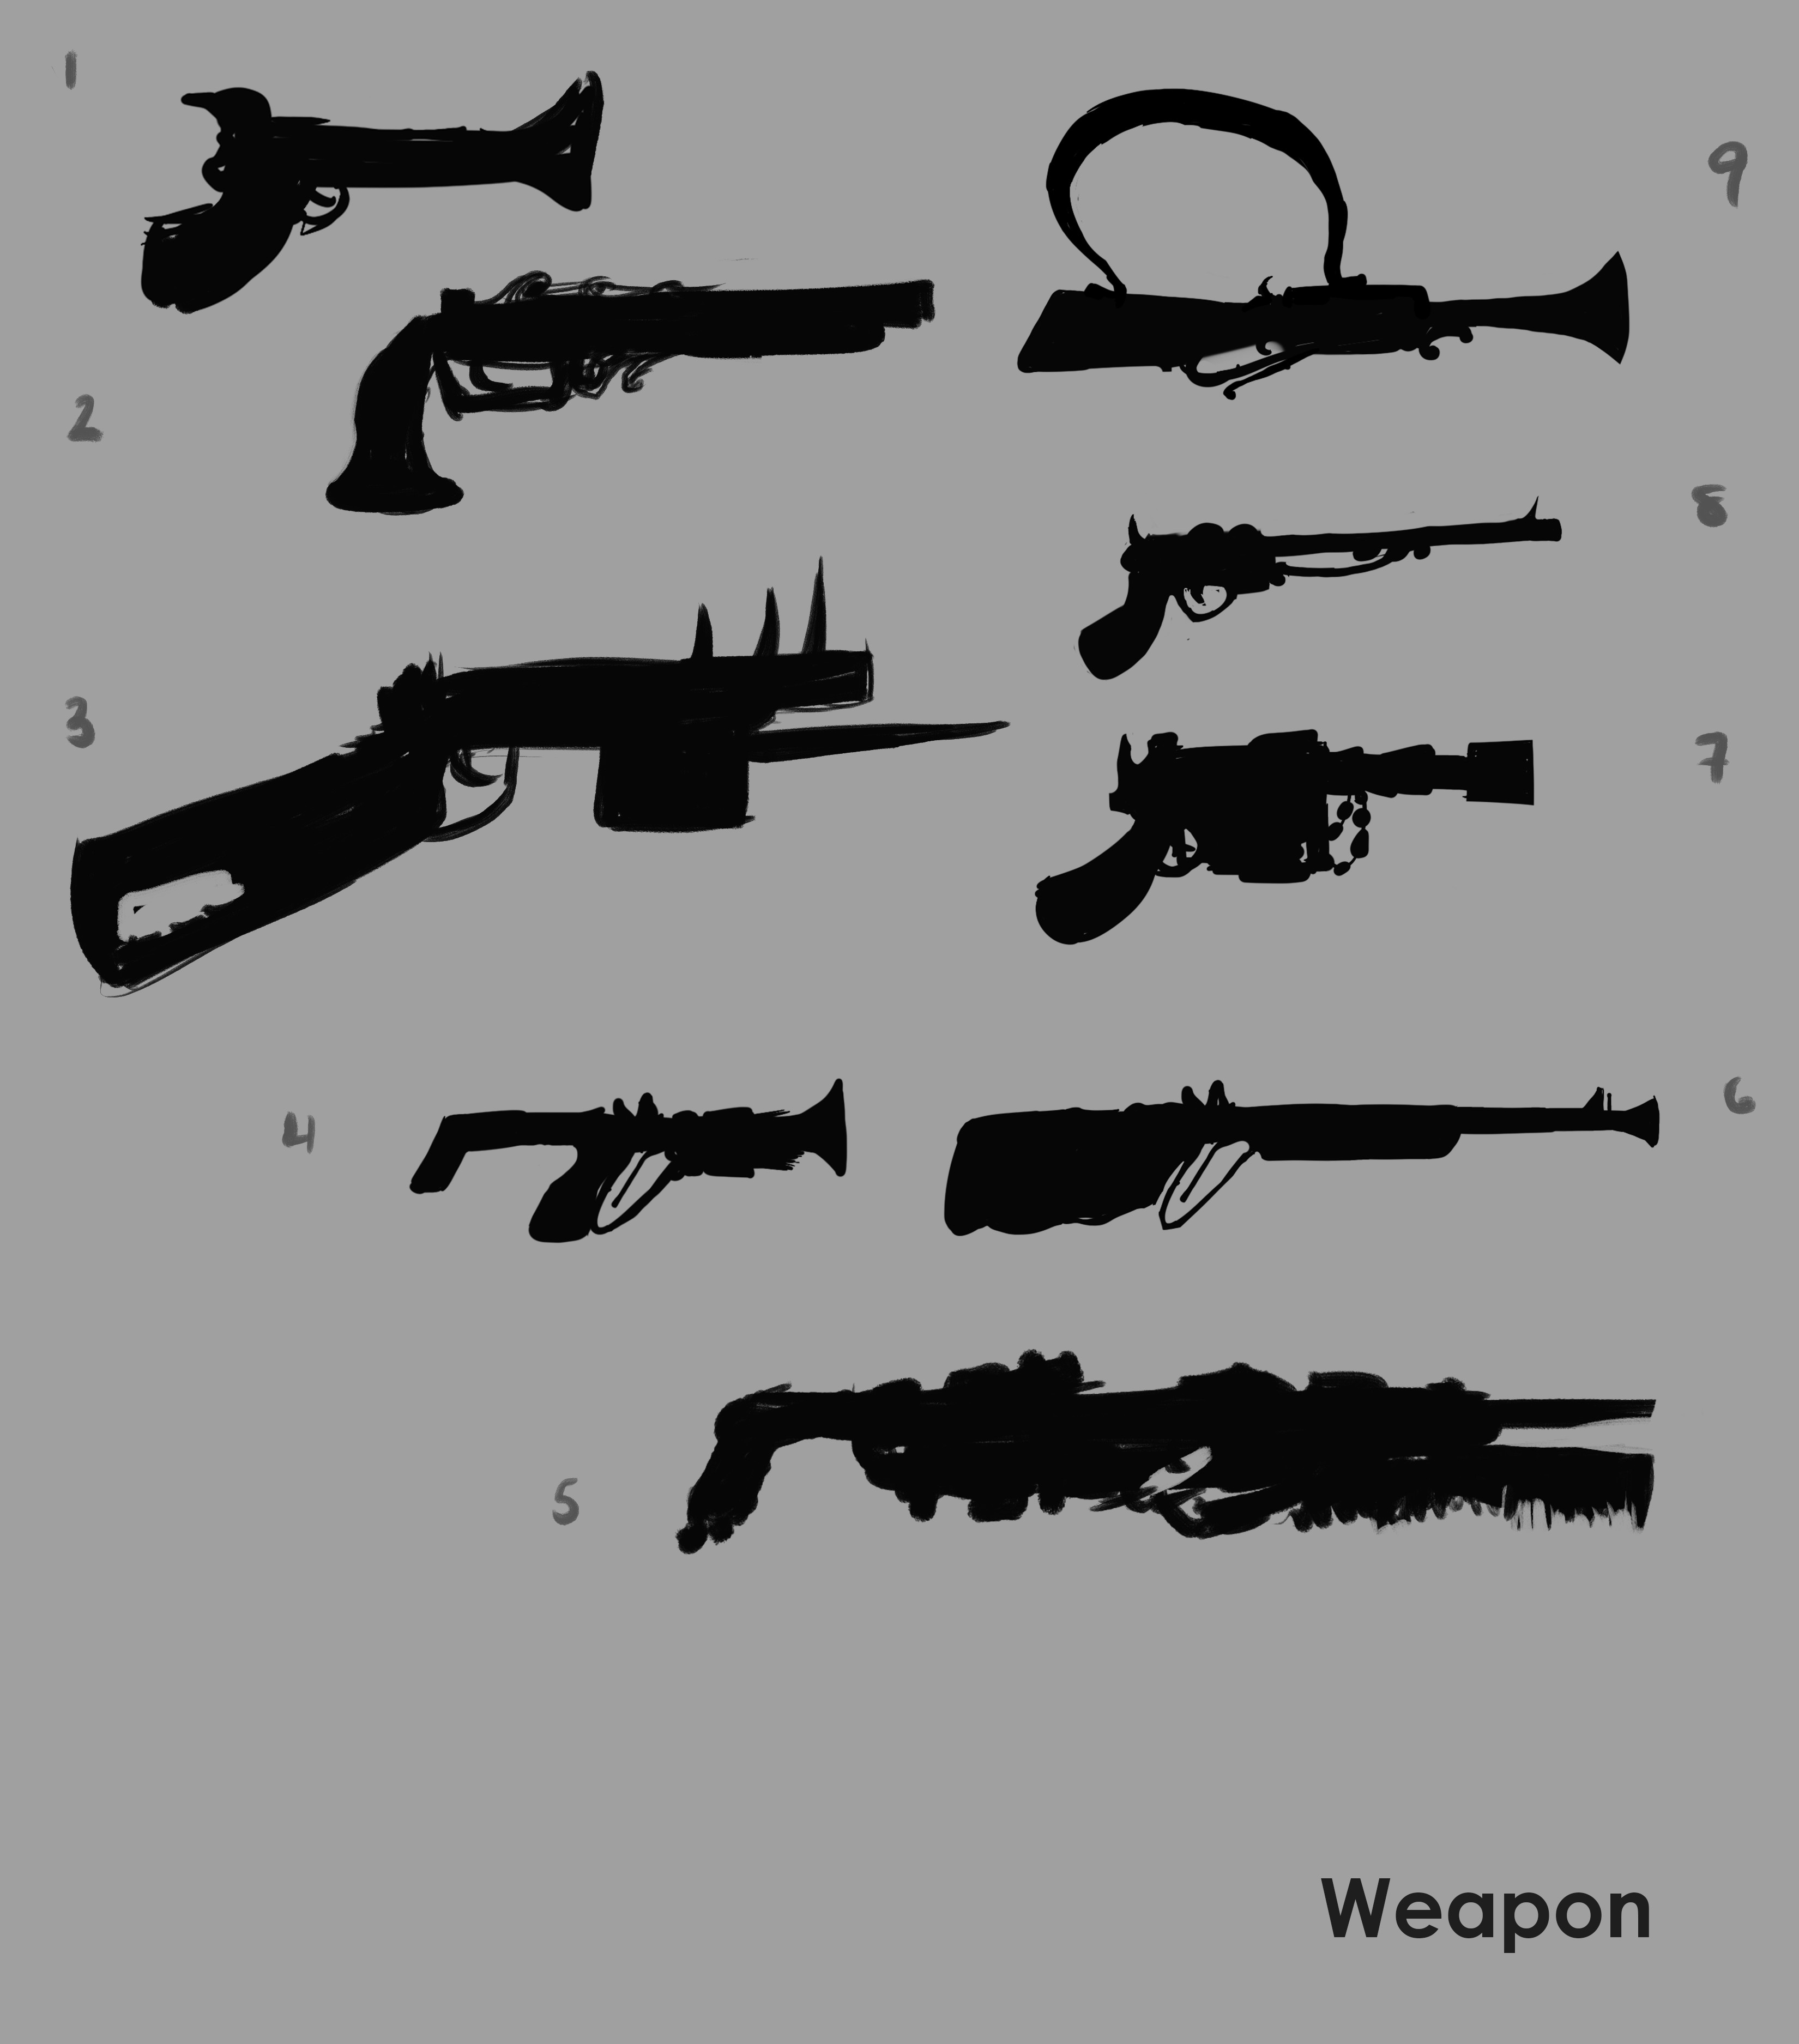 Prop/Weapon silhouette concepts.